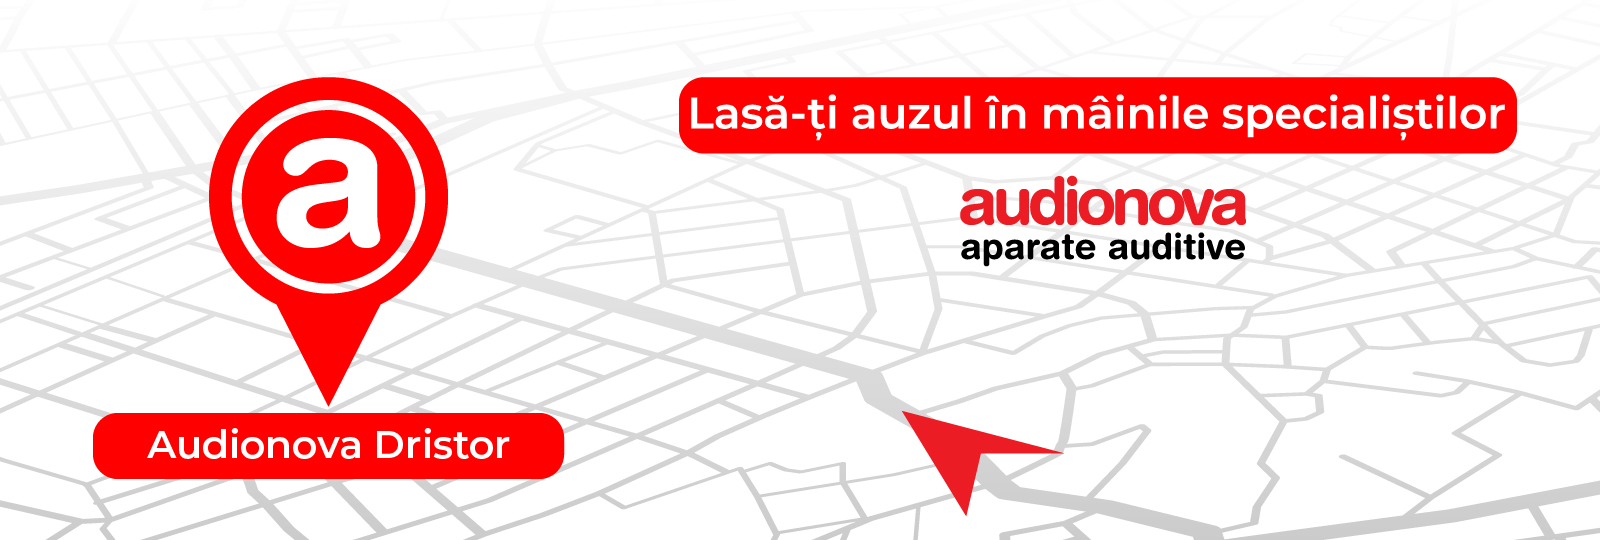 aparate auditive bucuresti dristor